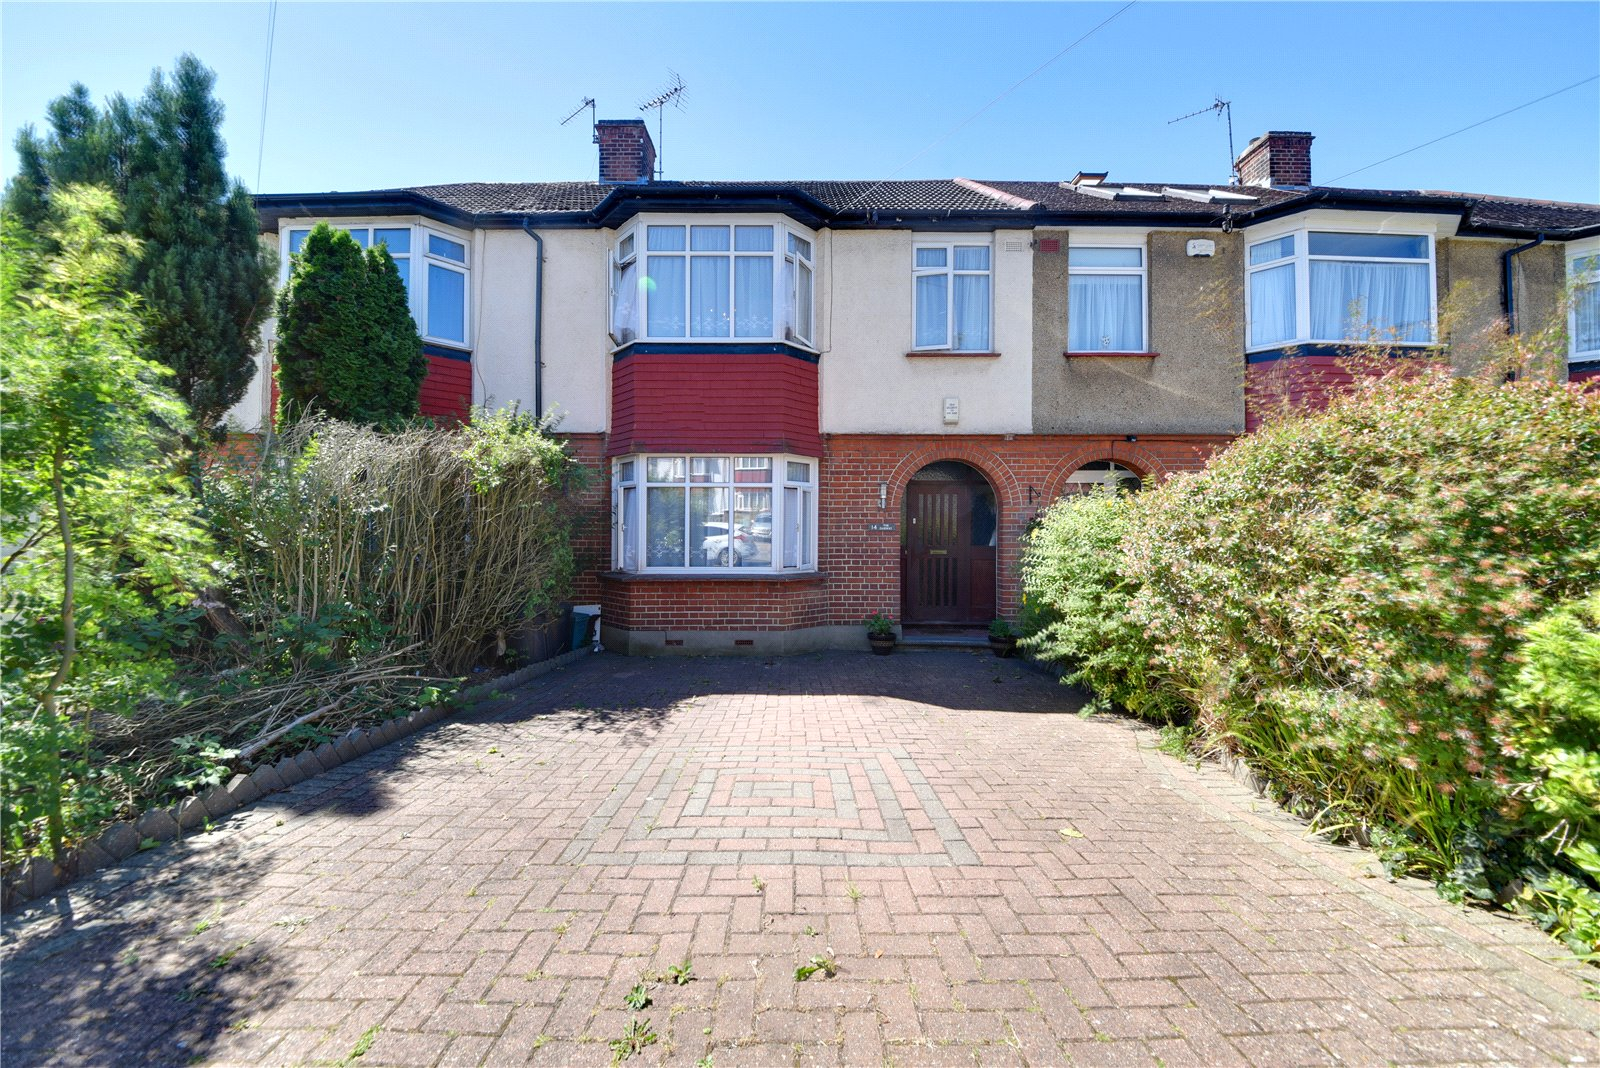 3 bed house for sale in Southgate, N14 4NY, N14